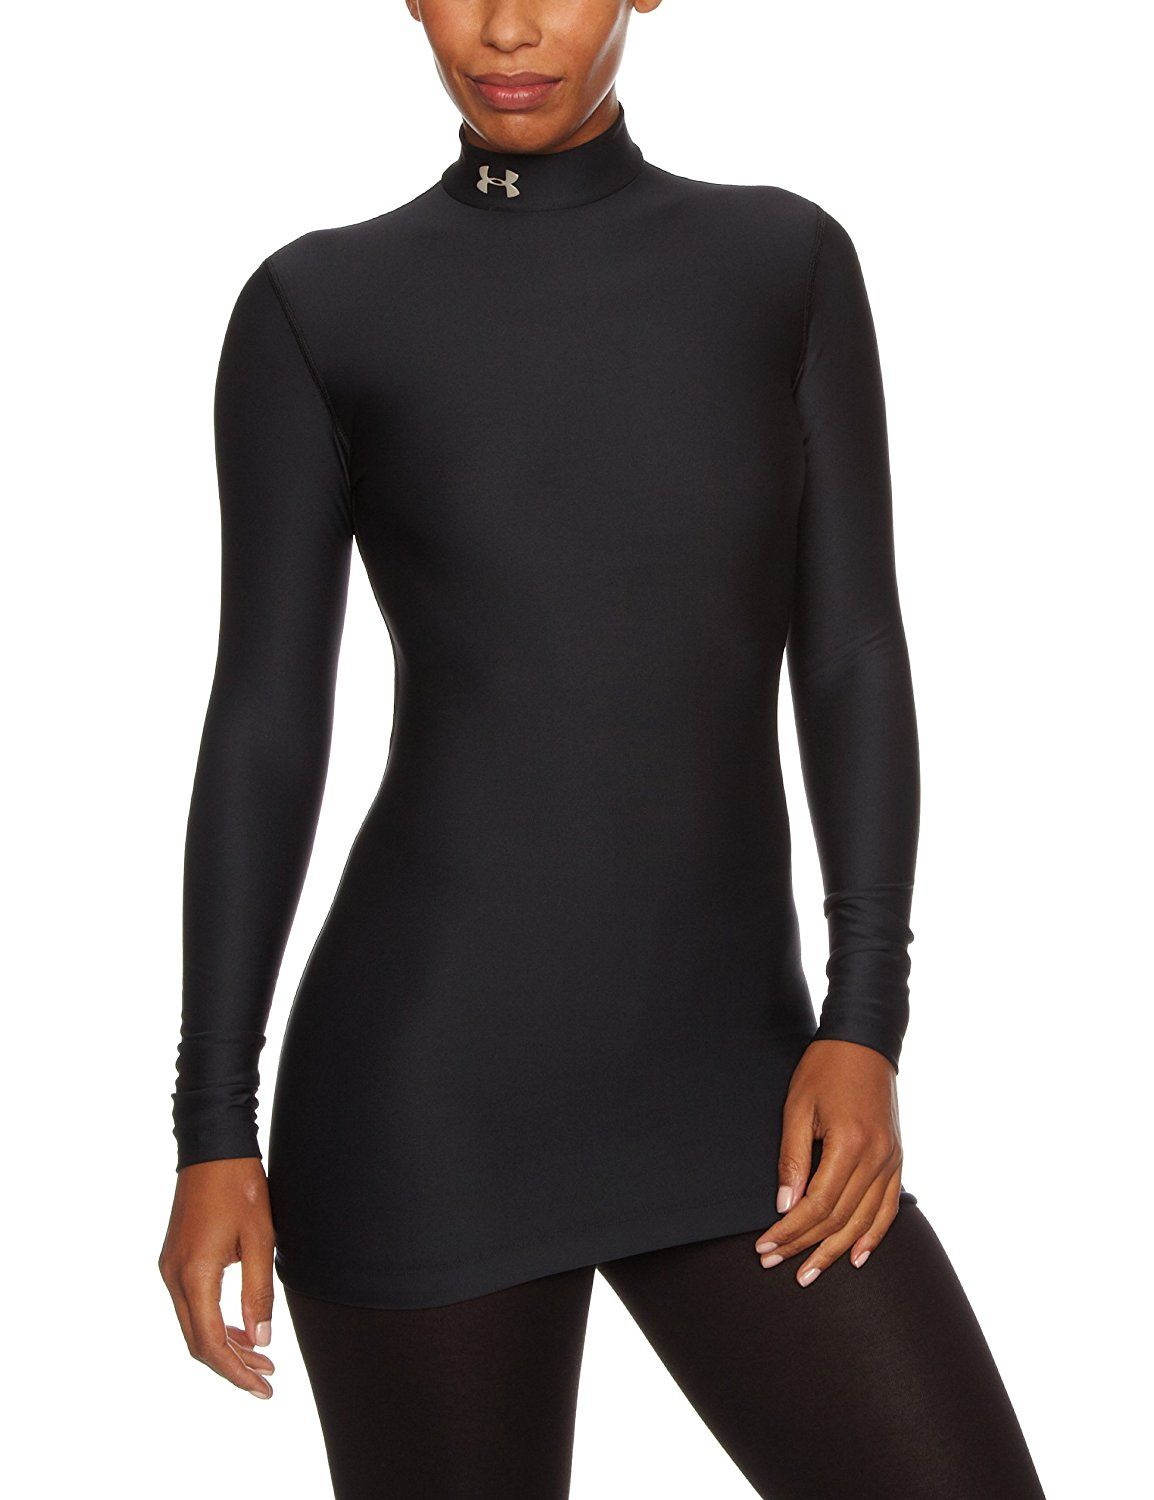 944cf4580 Under Armour Women's ColdGear Compression Mock   1 in 2019 ...